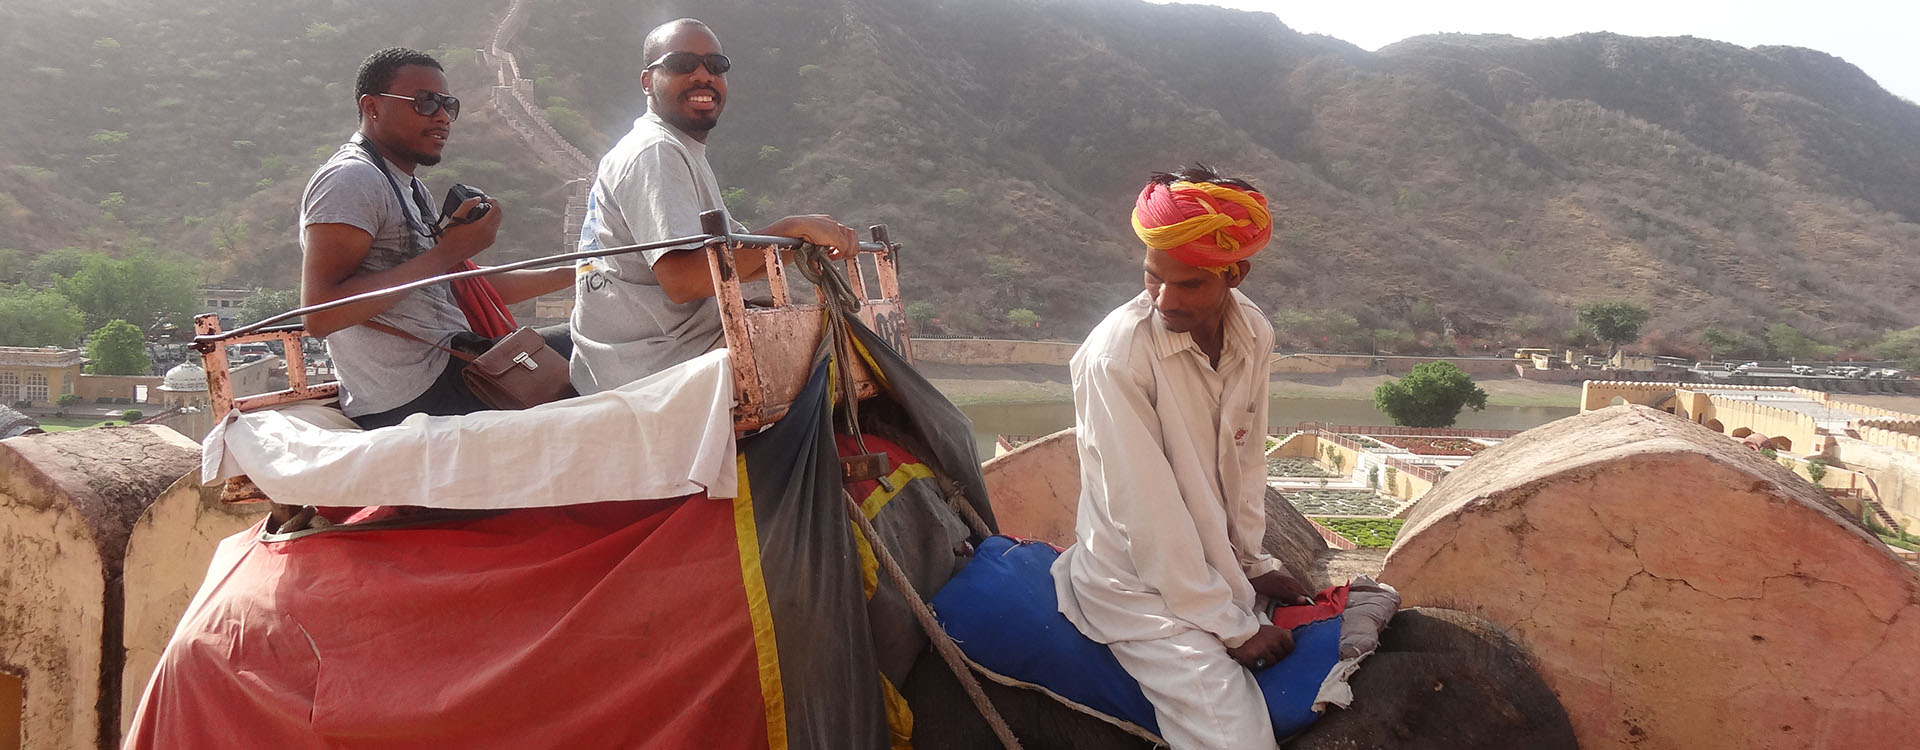 students riding a camel in India